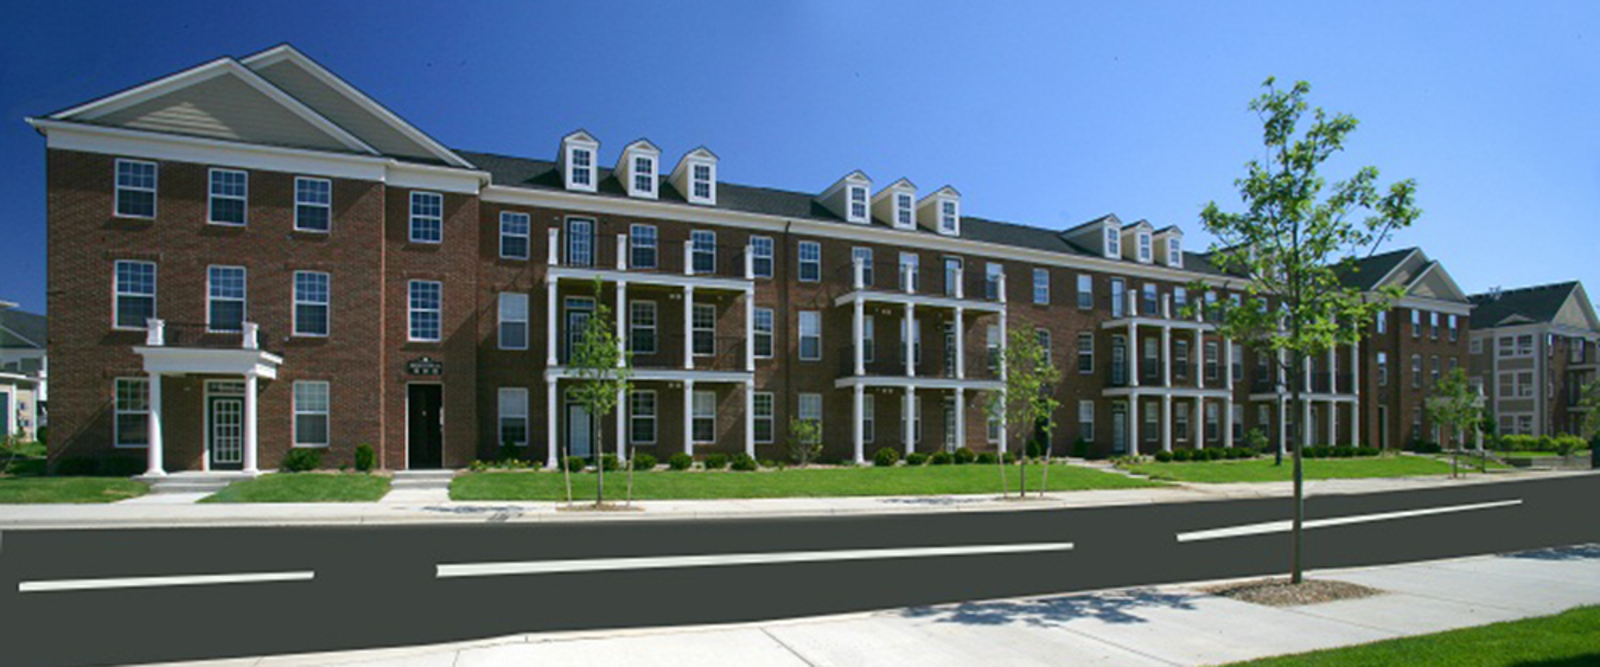 Downtown Canton Apartments Uptown In Canton In Canton Mi 48187